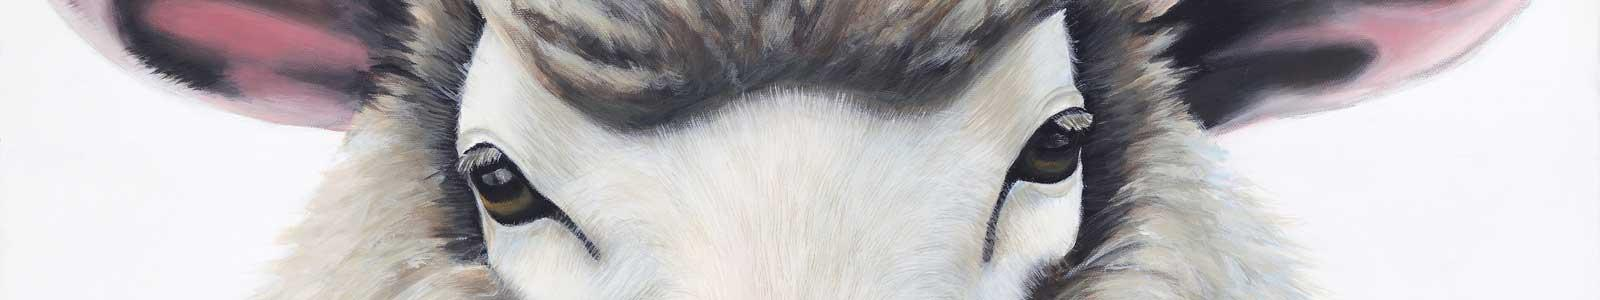 Margaret Petchell (detail) - ARTWEEK Auckland